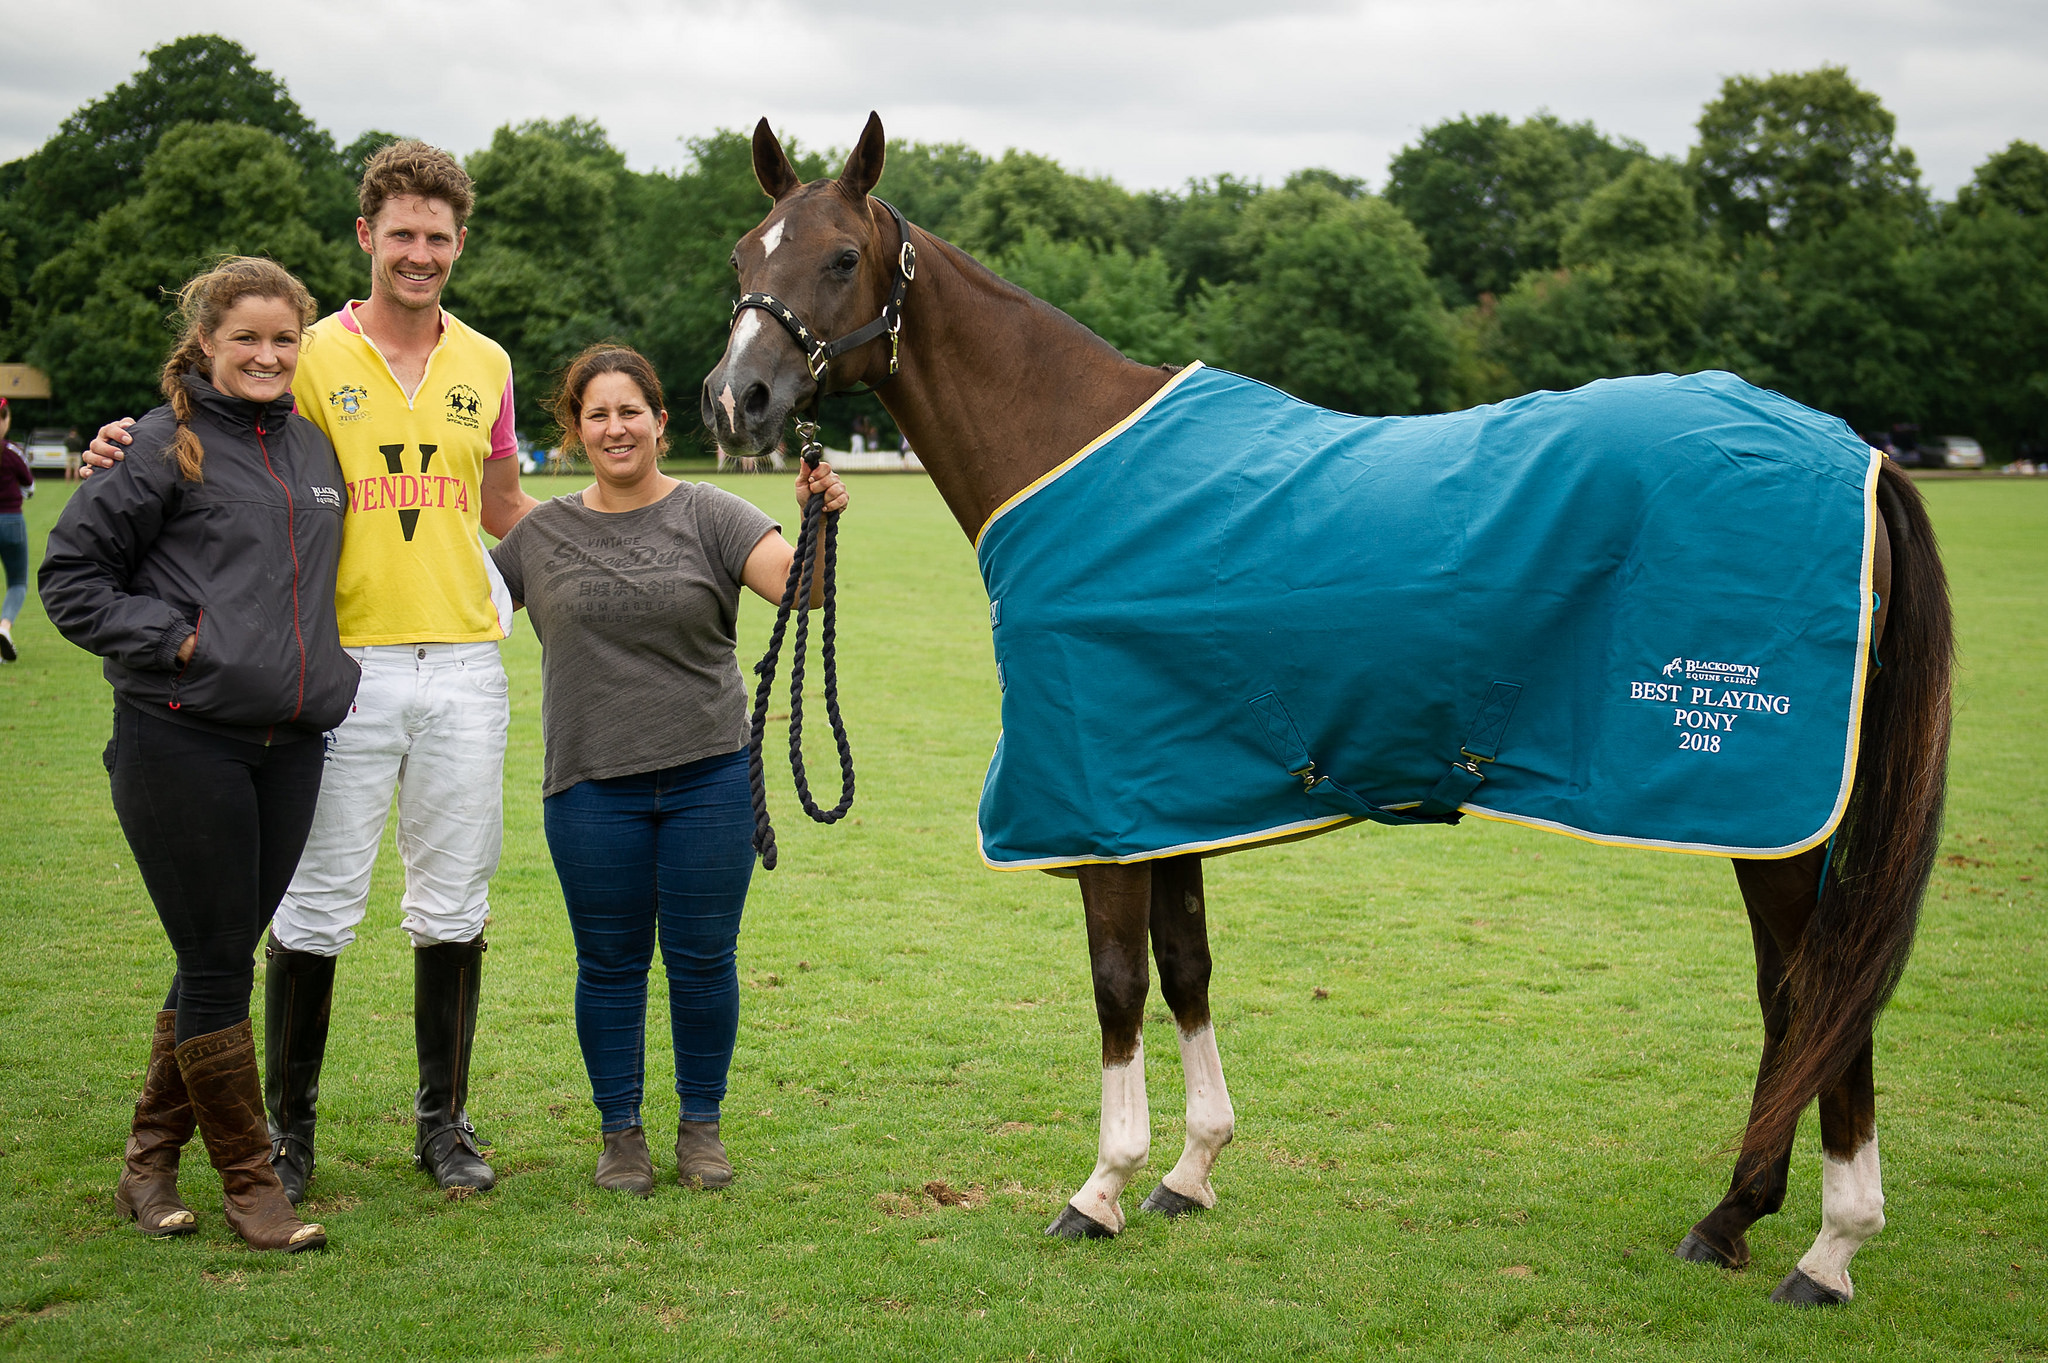 Best playing pony award was presented by Blackdown Equine Clinic and was won by Honey ridden by Jimmy Wood.